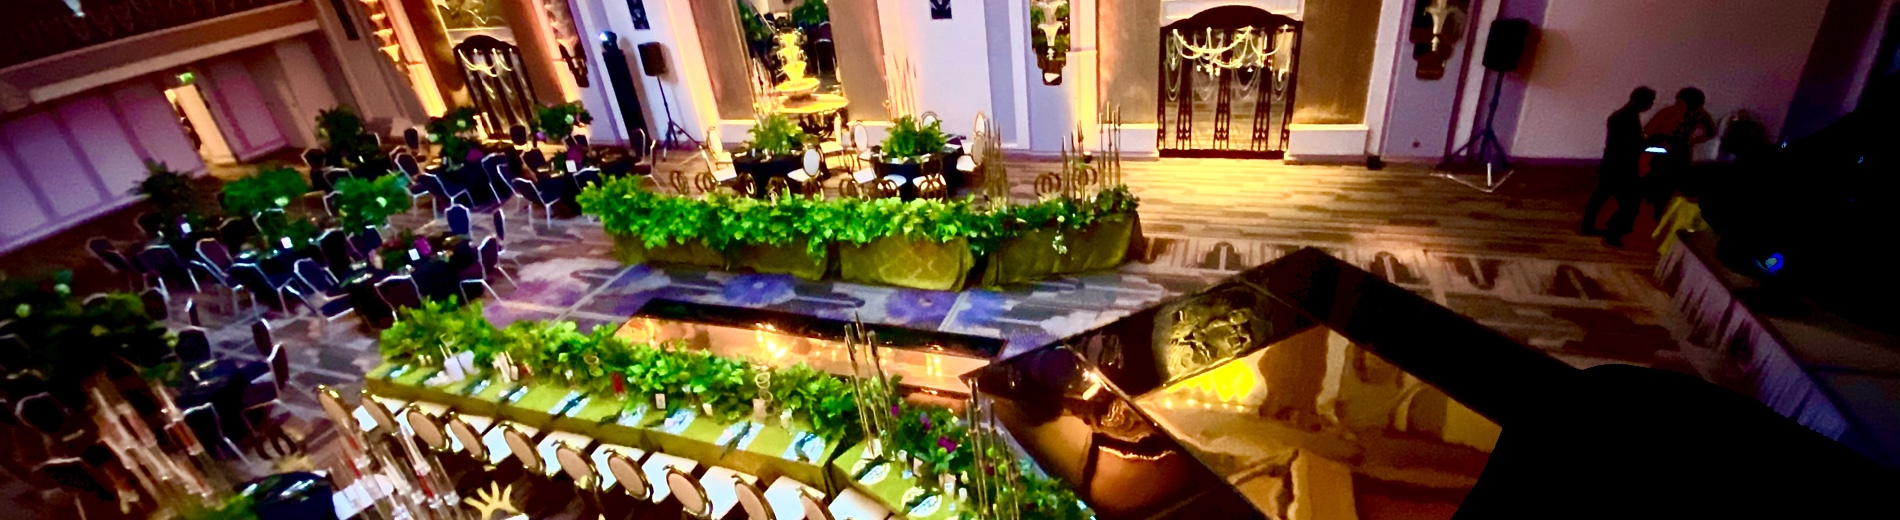 African Themed Event and Wedding Venue Decoration